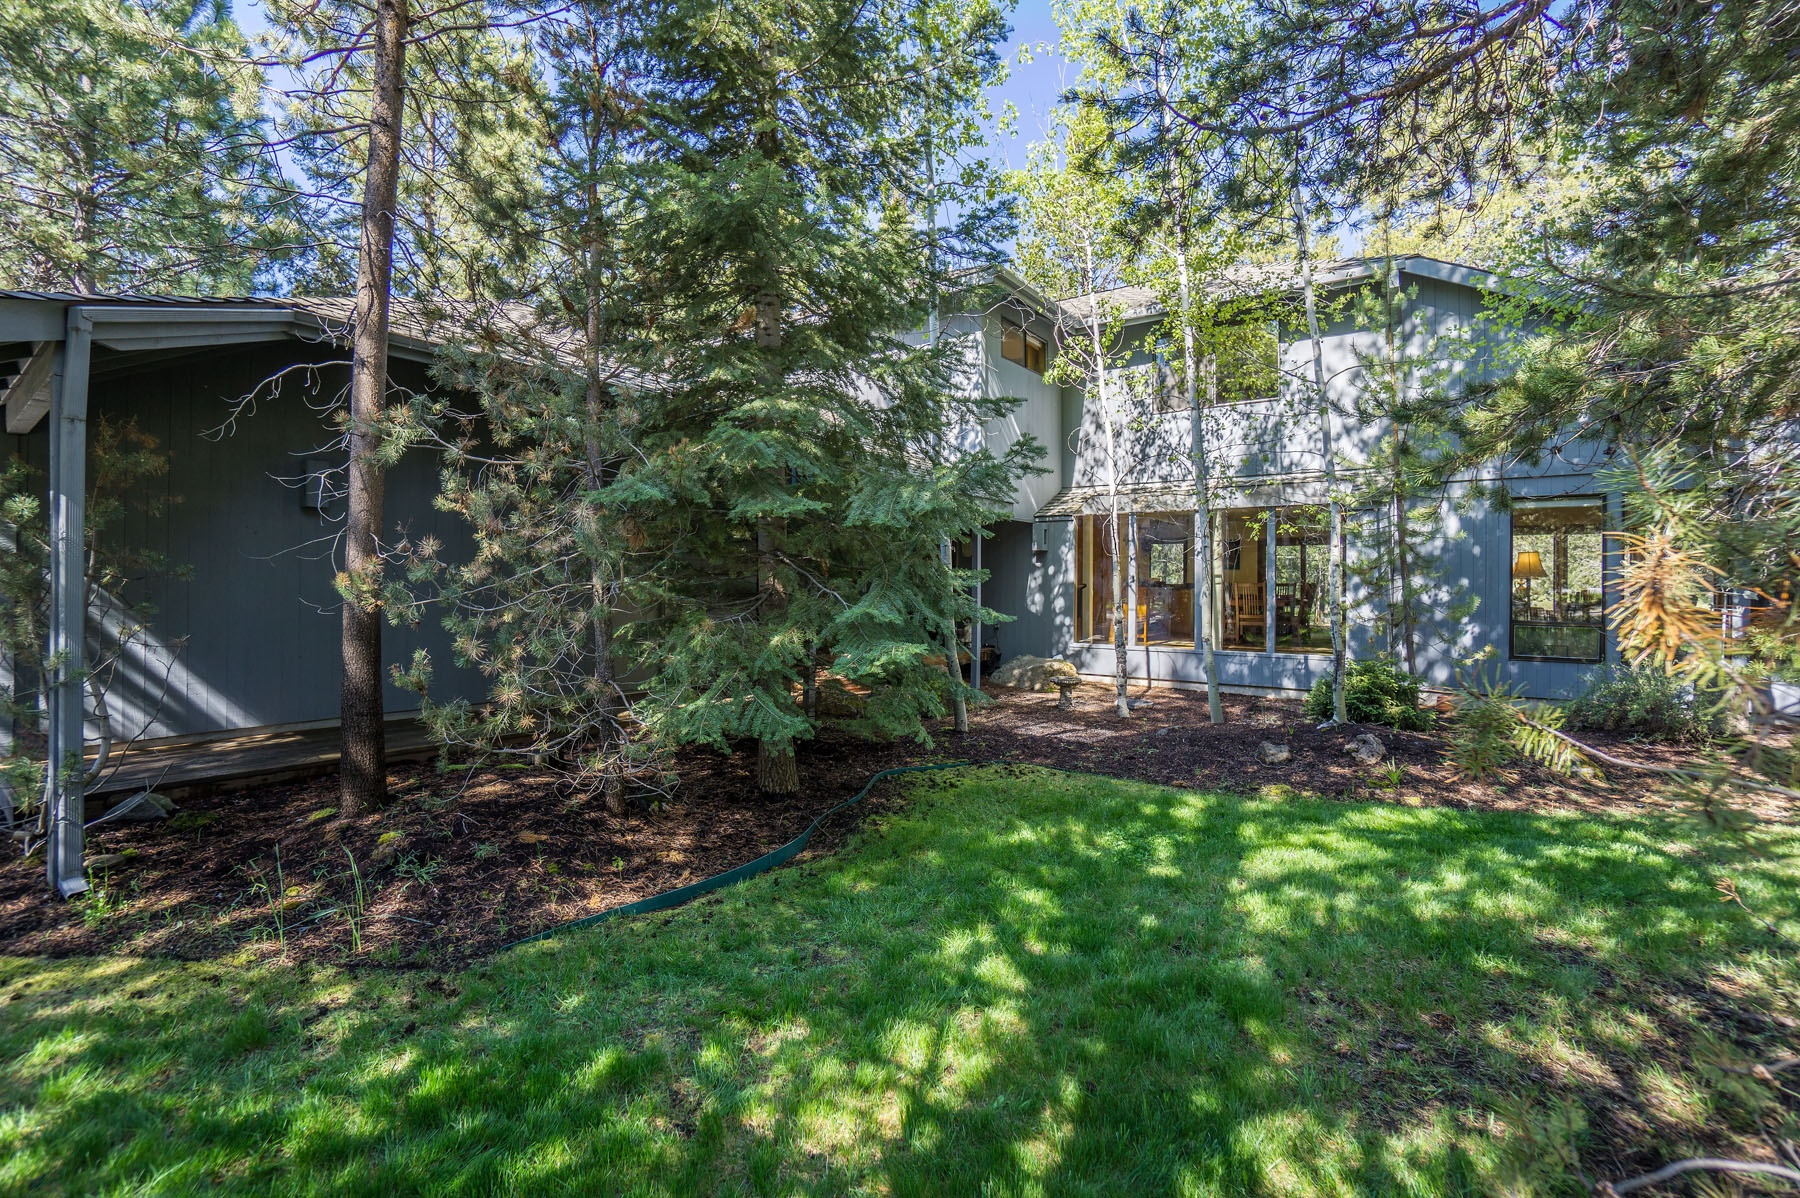 Property For Sale at 8 Approach, Sunriver, OR 97707